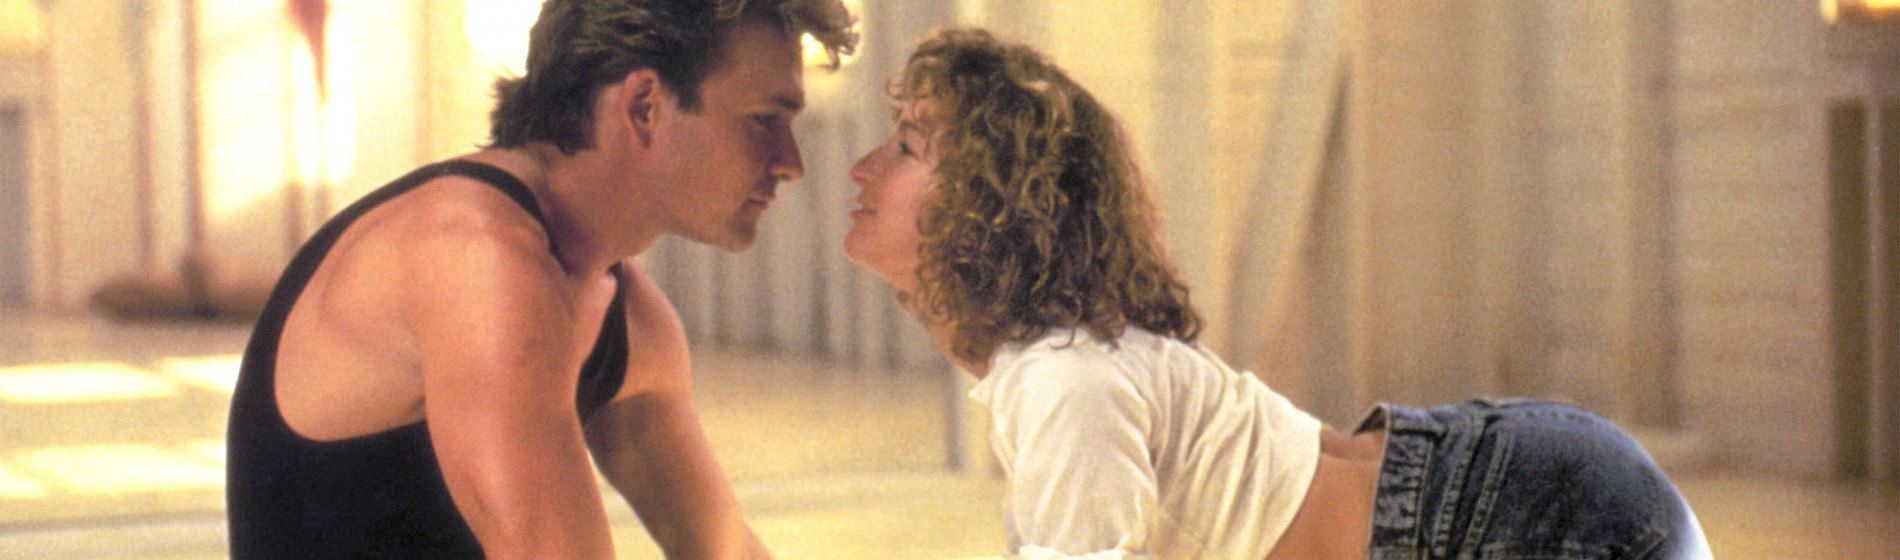 Top 10 Movie Love Stories Dirty Dancing